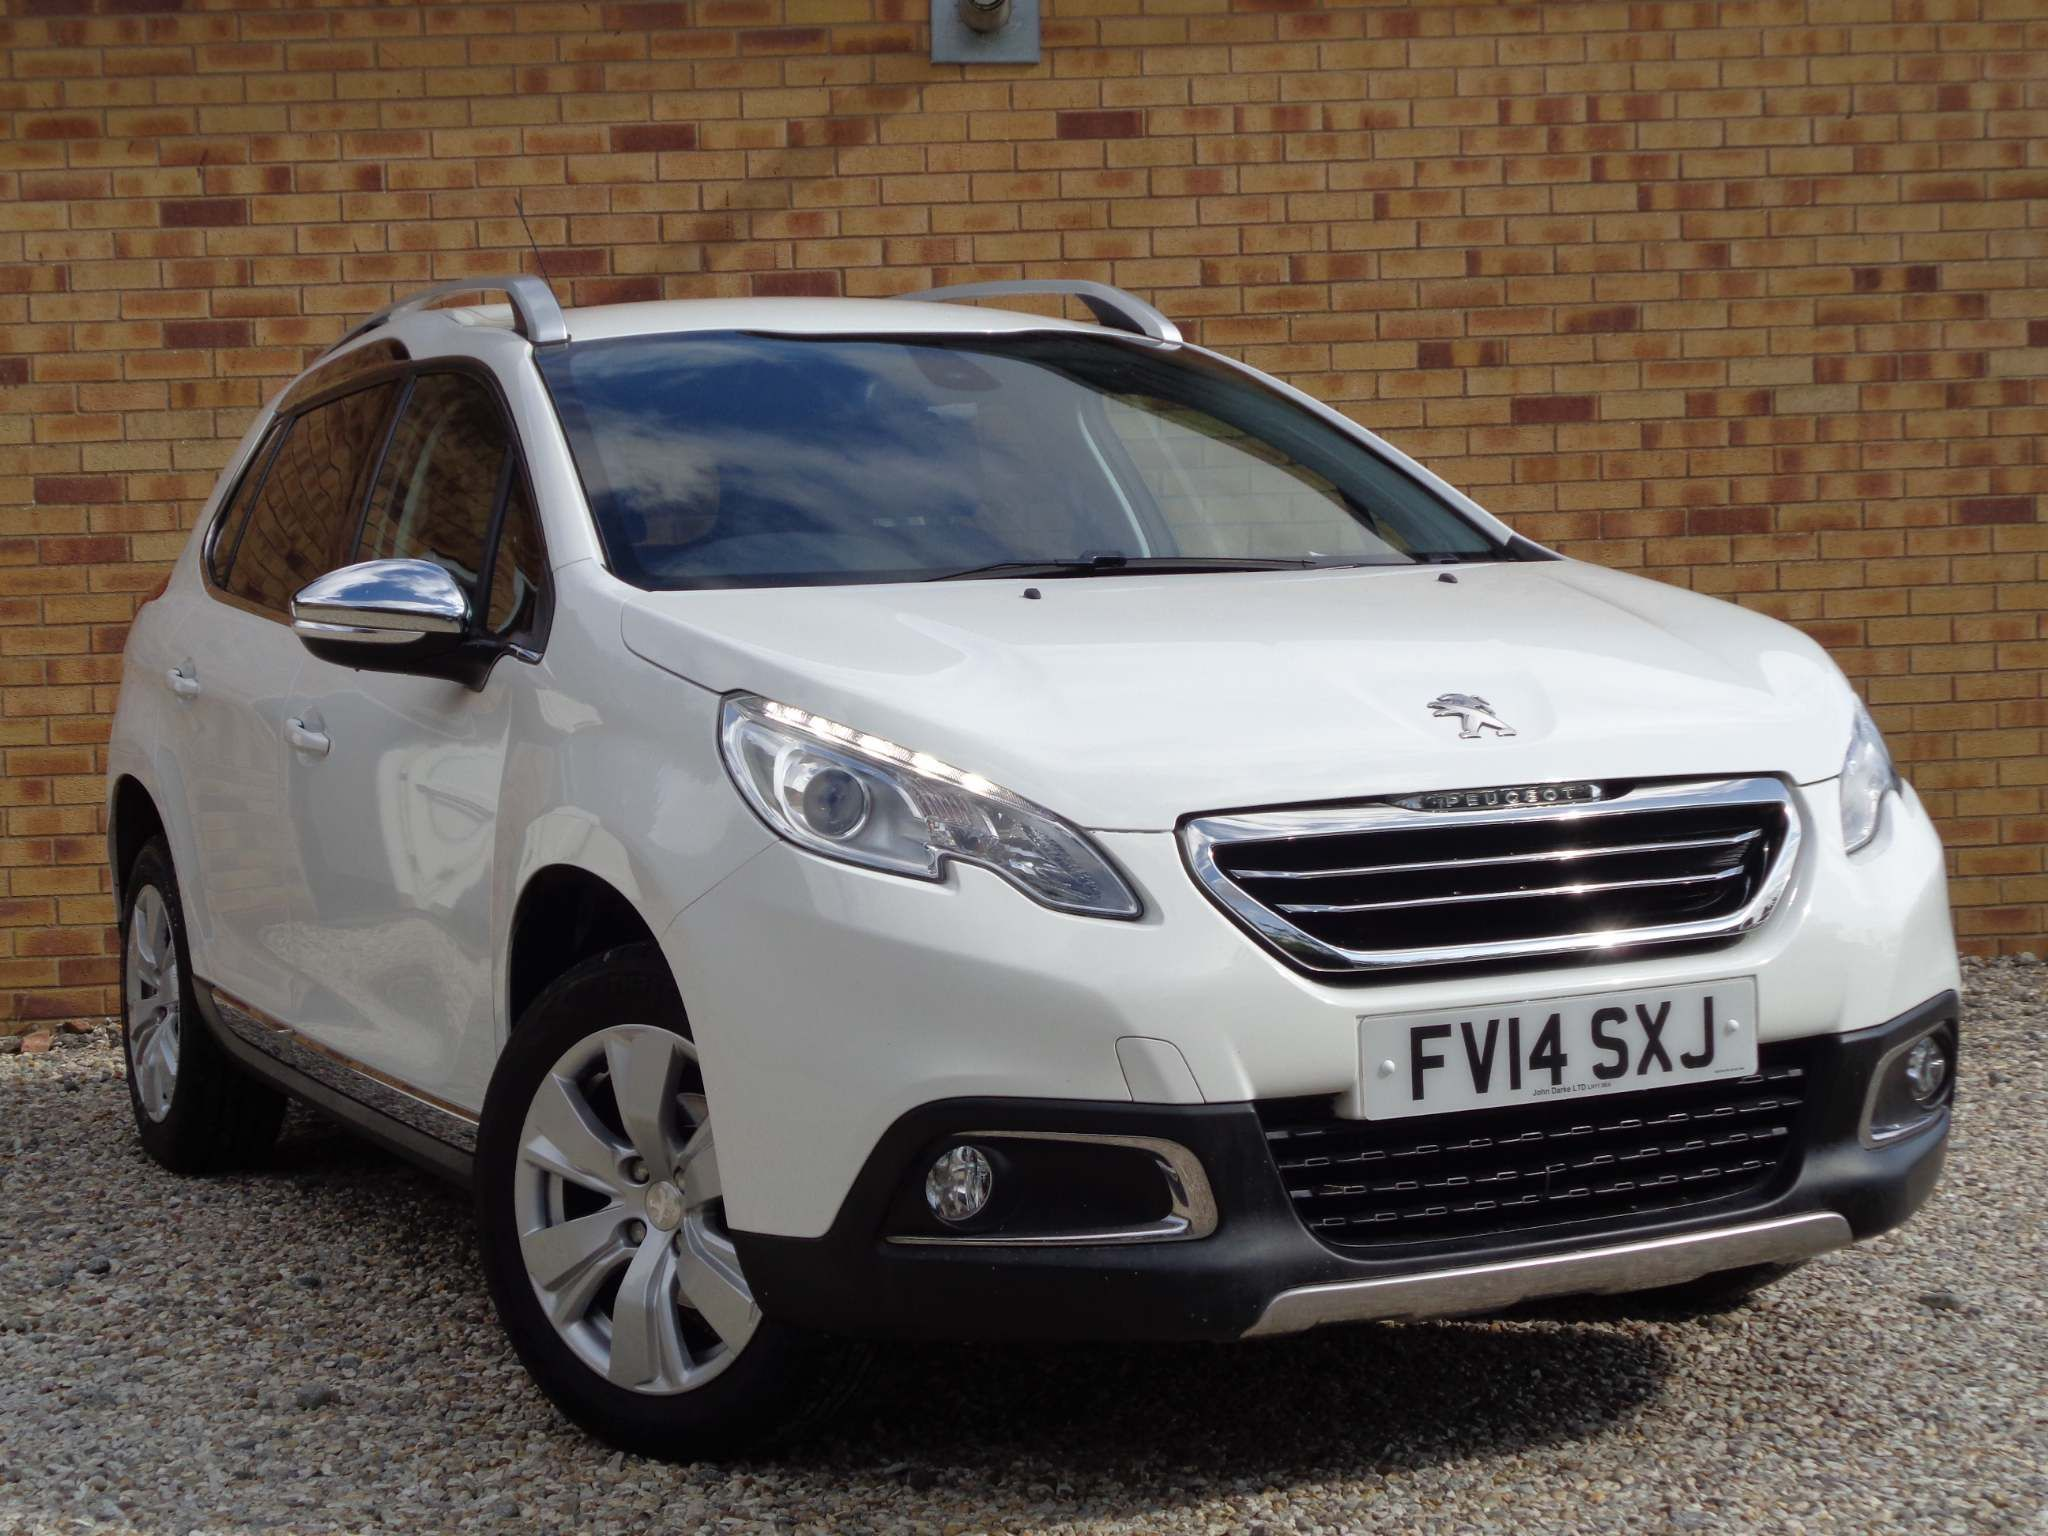 http://pictures2.autotrader.co.uk/imgser-uk/servlet/media?id=547416e22a1f4b1f869cb73ee4bc521e